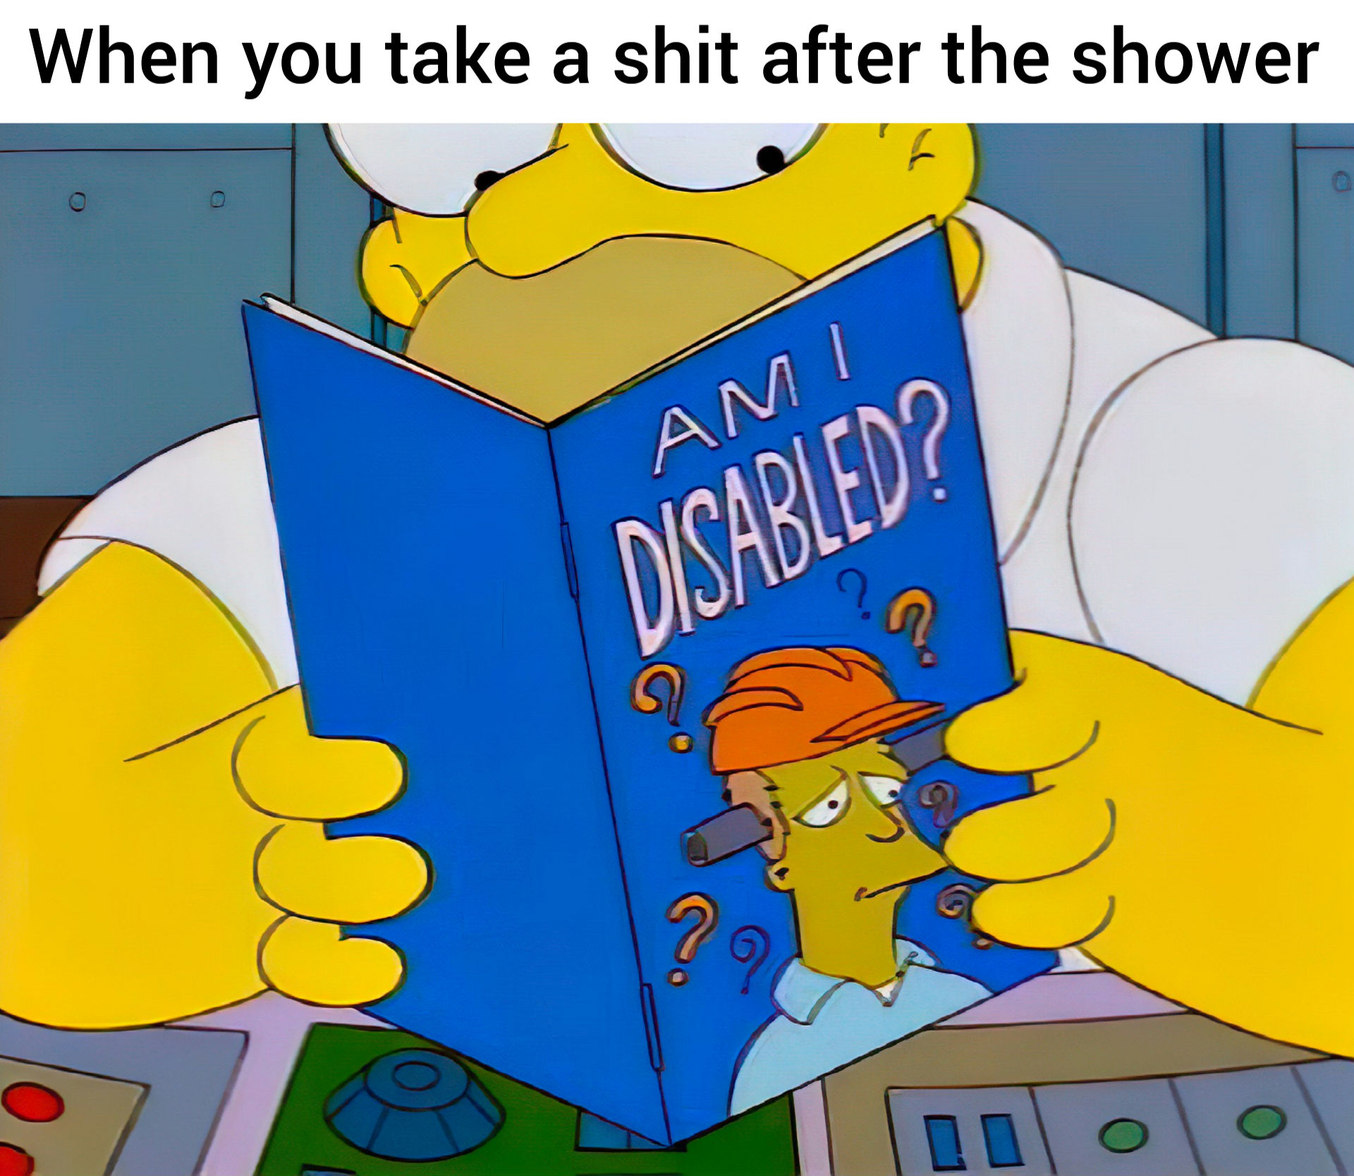 Time for a 2nd shower - meme